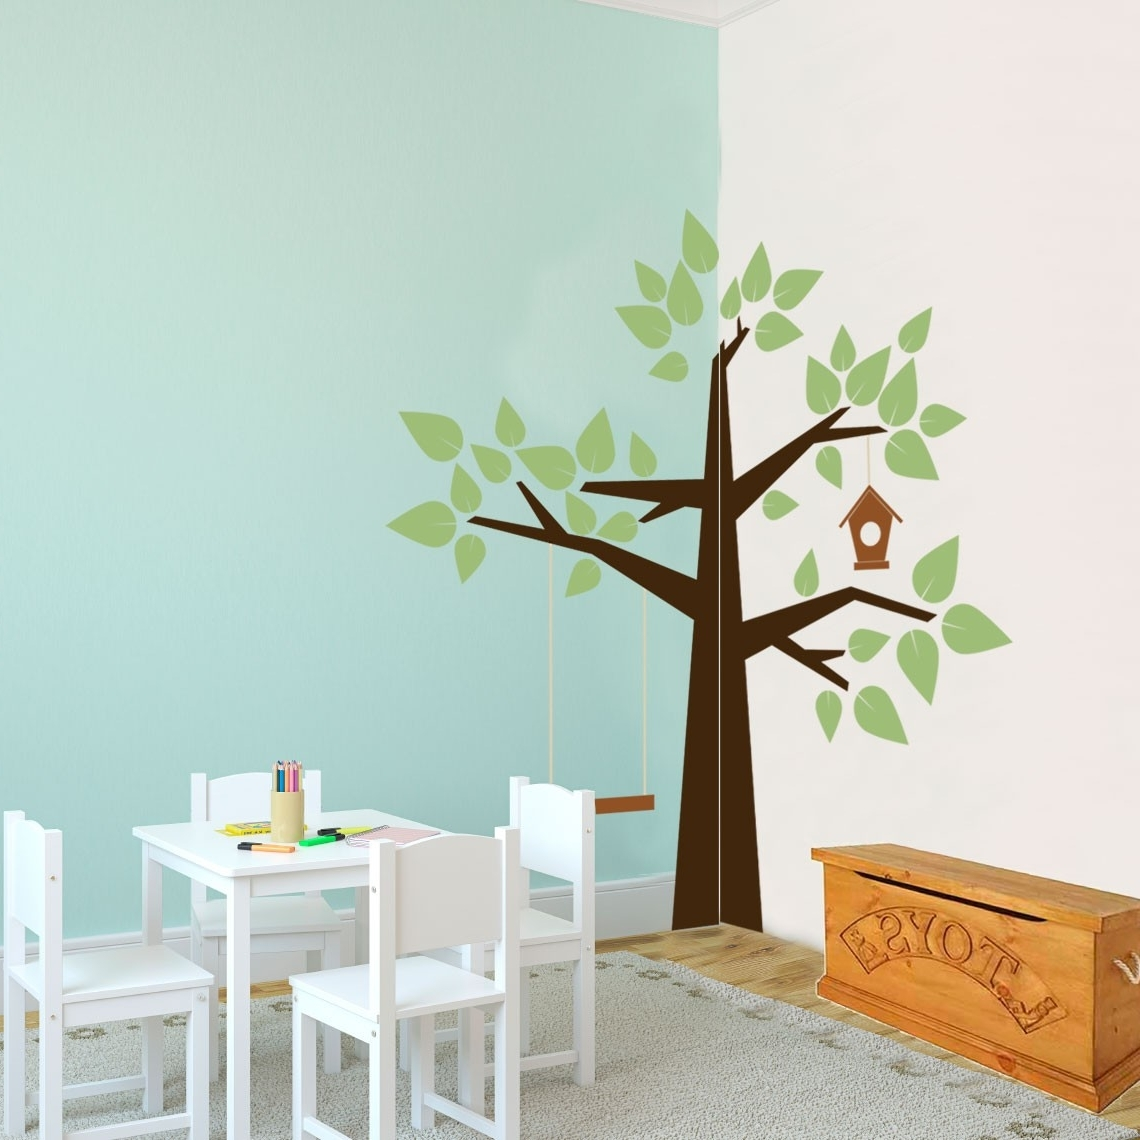 Classroom Vinyl Wall Art Pertaining To Current Whimsical Corner Tree – Nature – Vinyl Wall Art Decal For Kids (View 3 of 15)